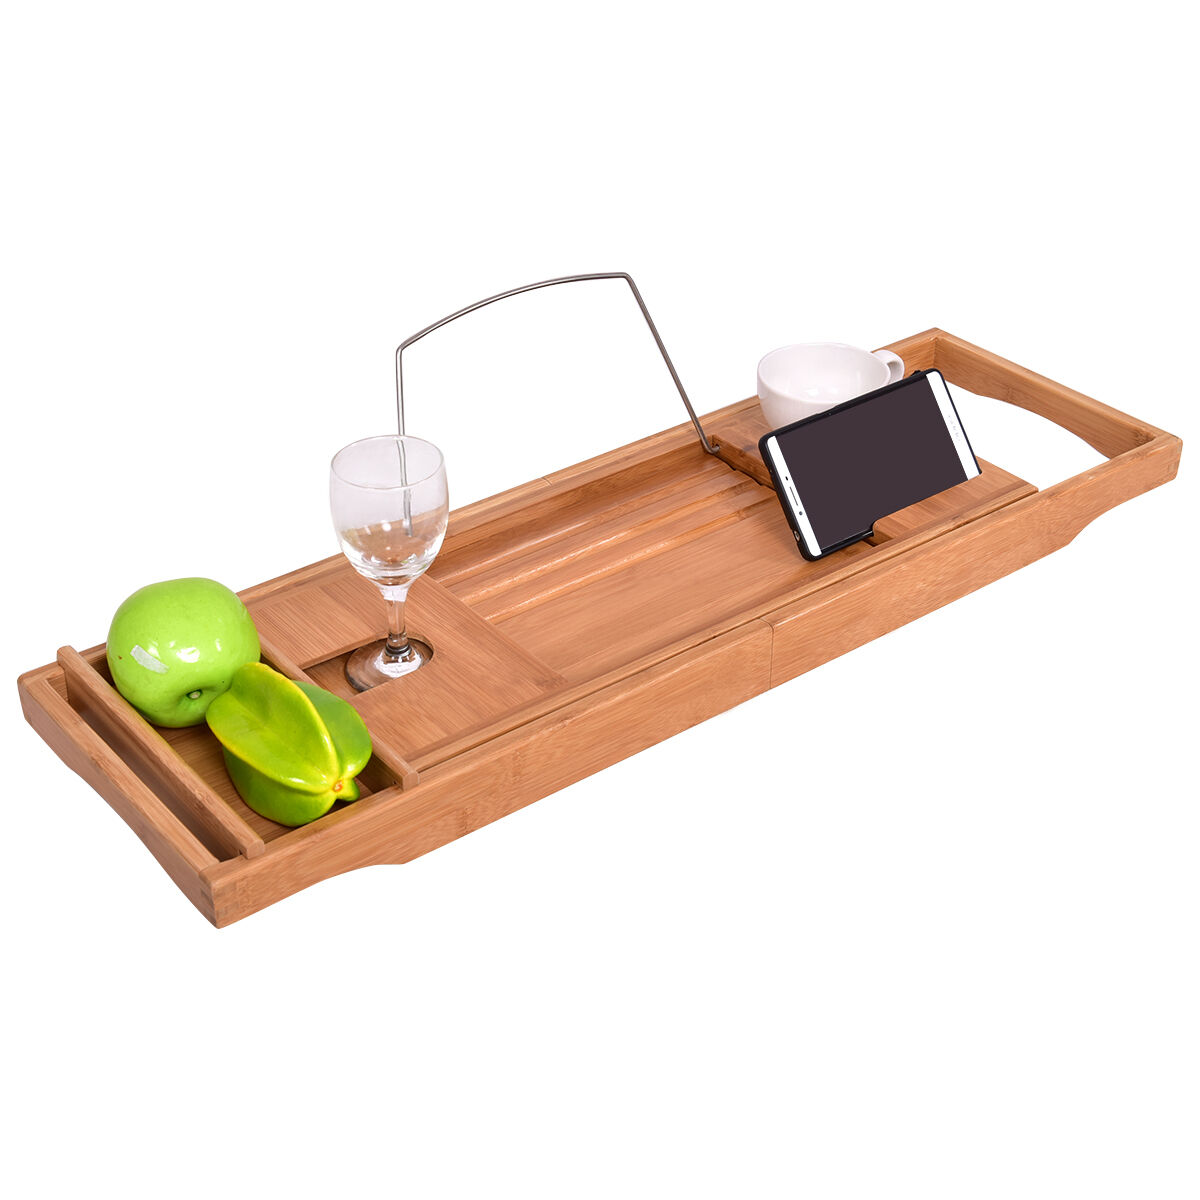 BAMBOO BATHTUB CADDY Shower Rack Bath Tub Tray Organizer Holder ...